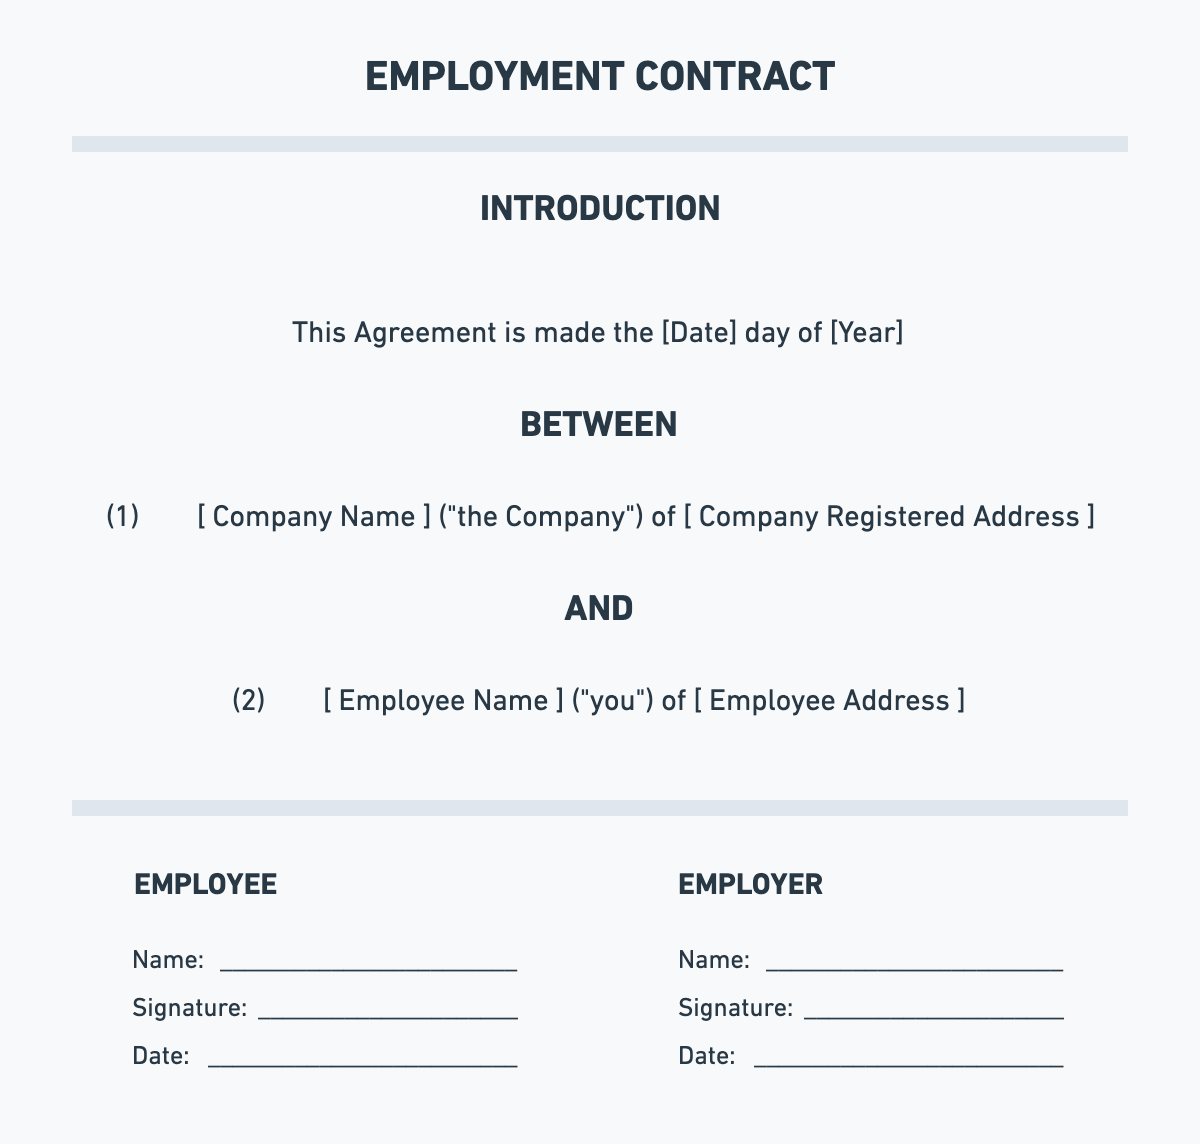 Hair-Salon-and-Barbers-Wireframes---Employement-Contract@2x